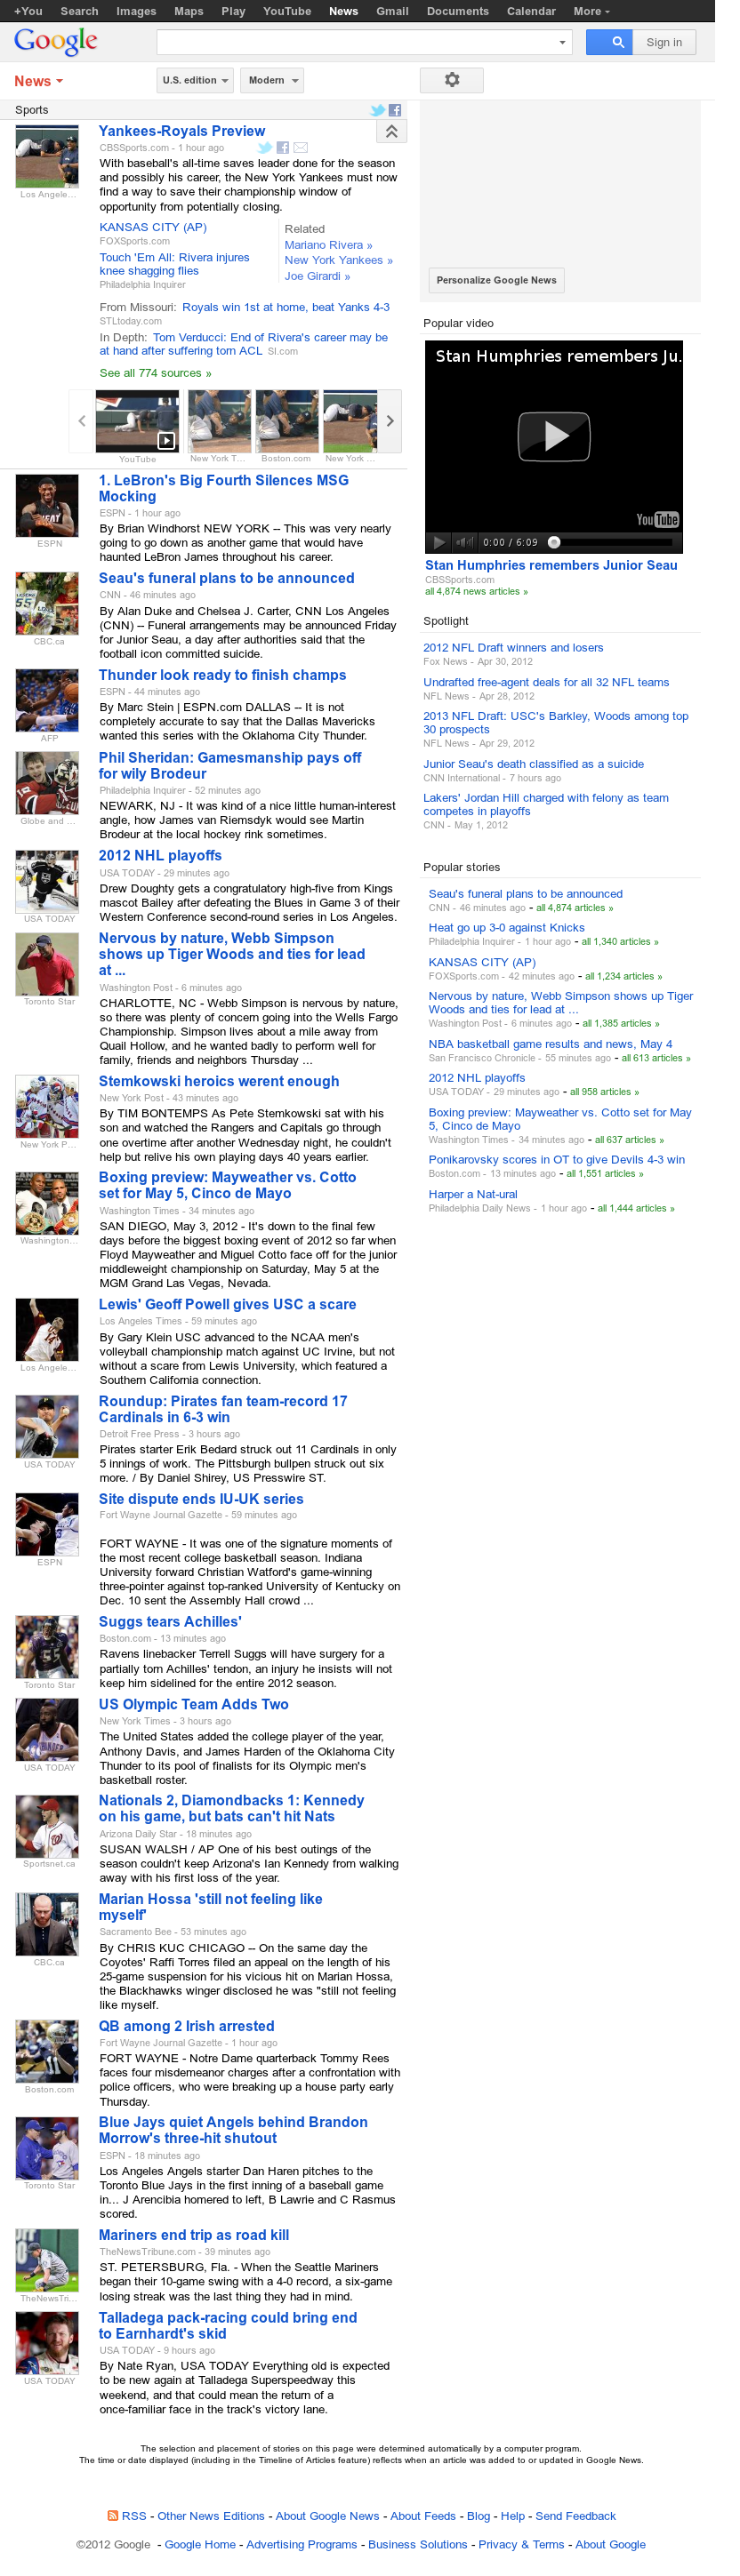 Google News: Sports at Friday May 4, 2012, 8:07 a.m. UTC